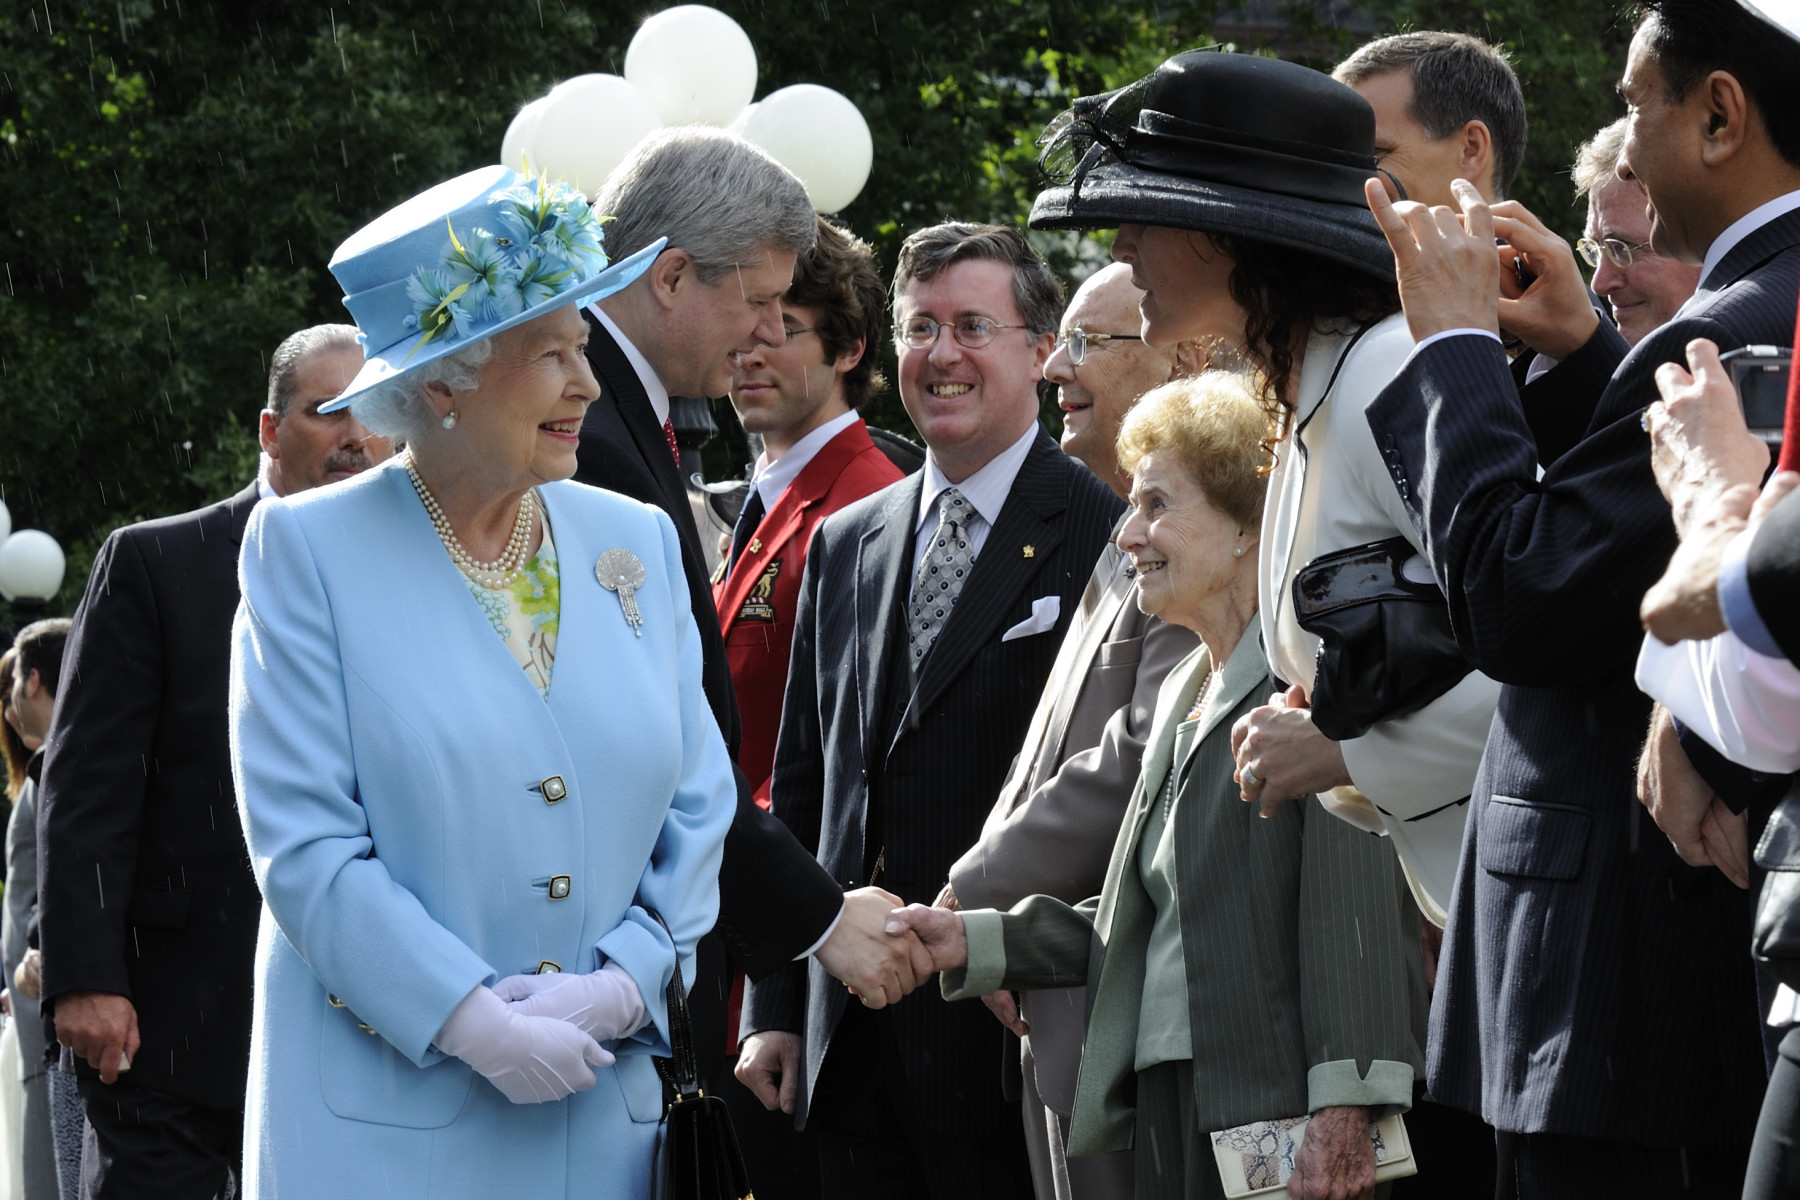 The Queen and The Duke of Edinburgh hosted a garden reception at Rideau Hall.